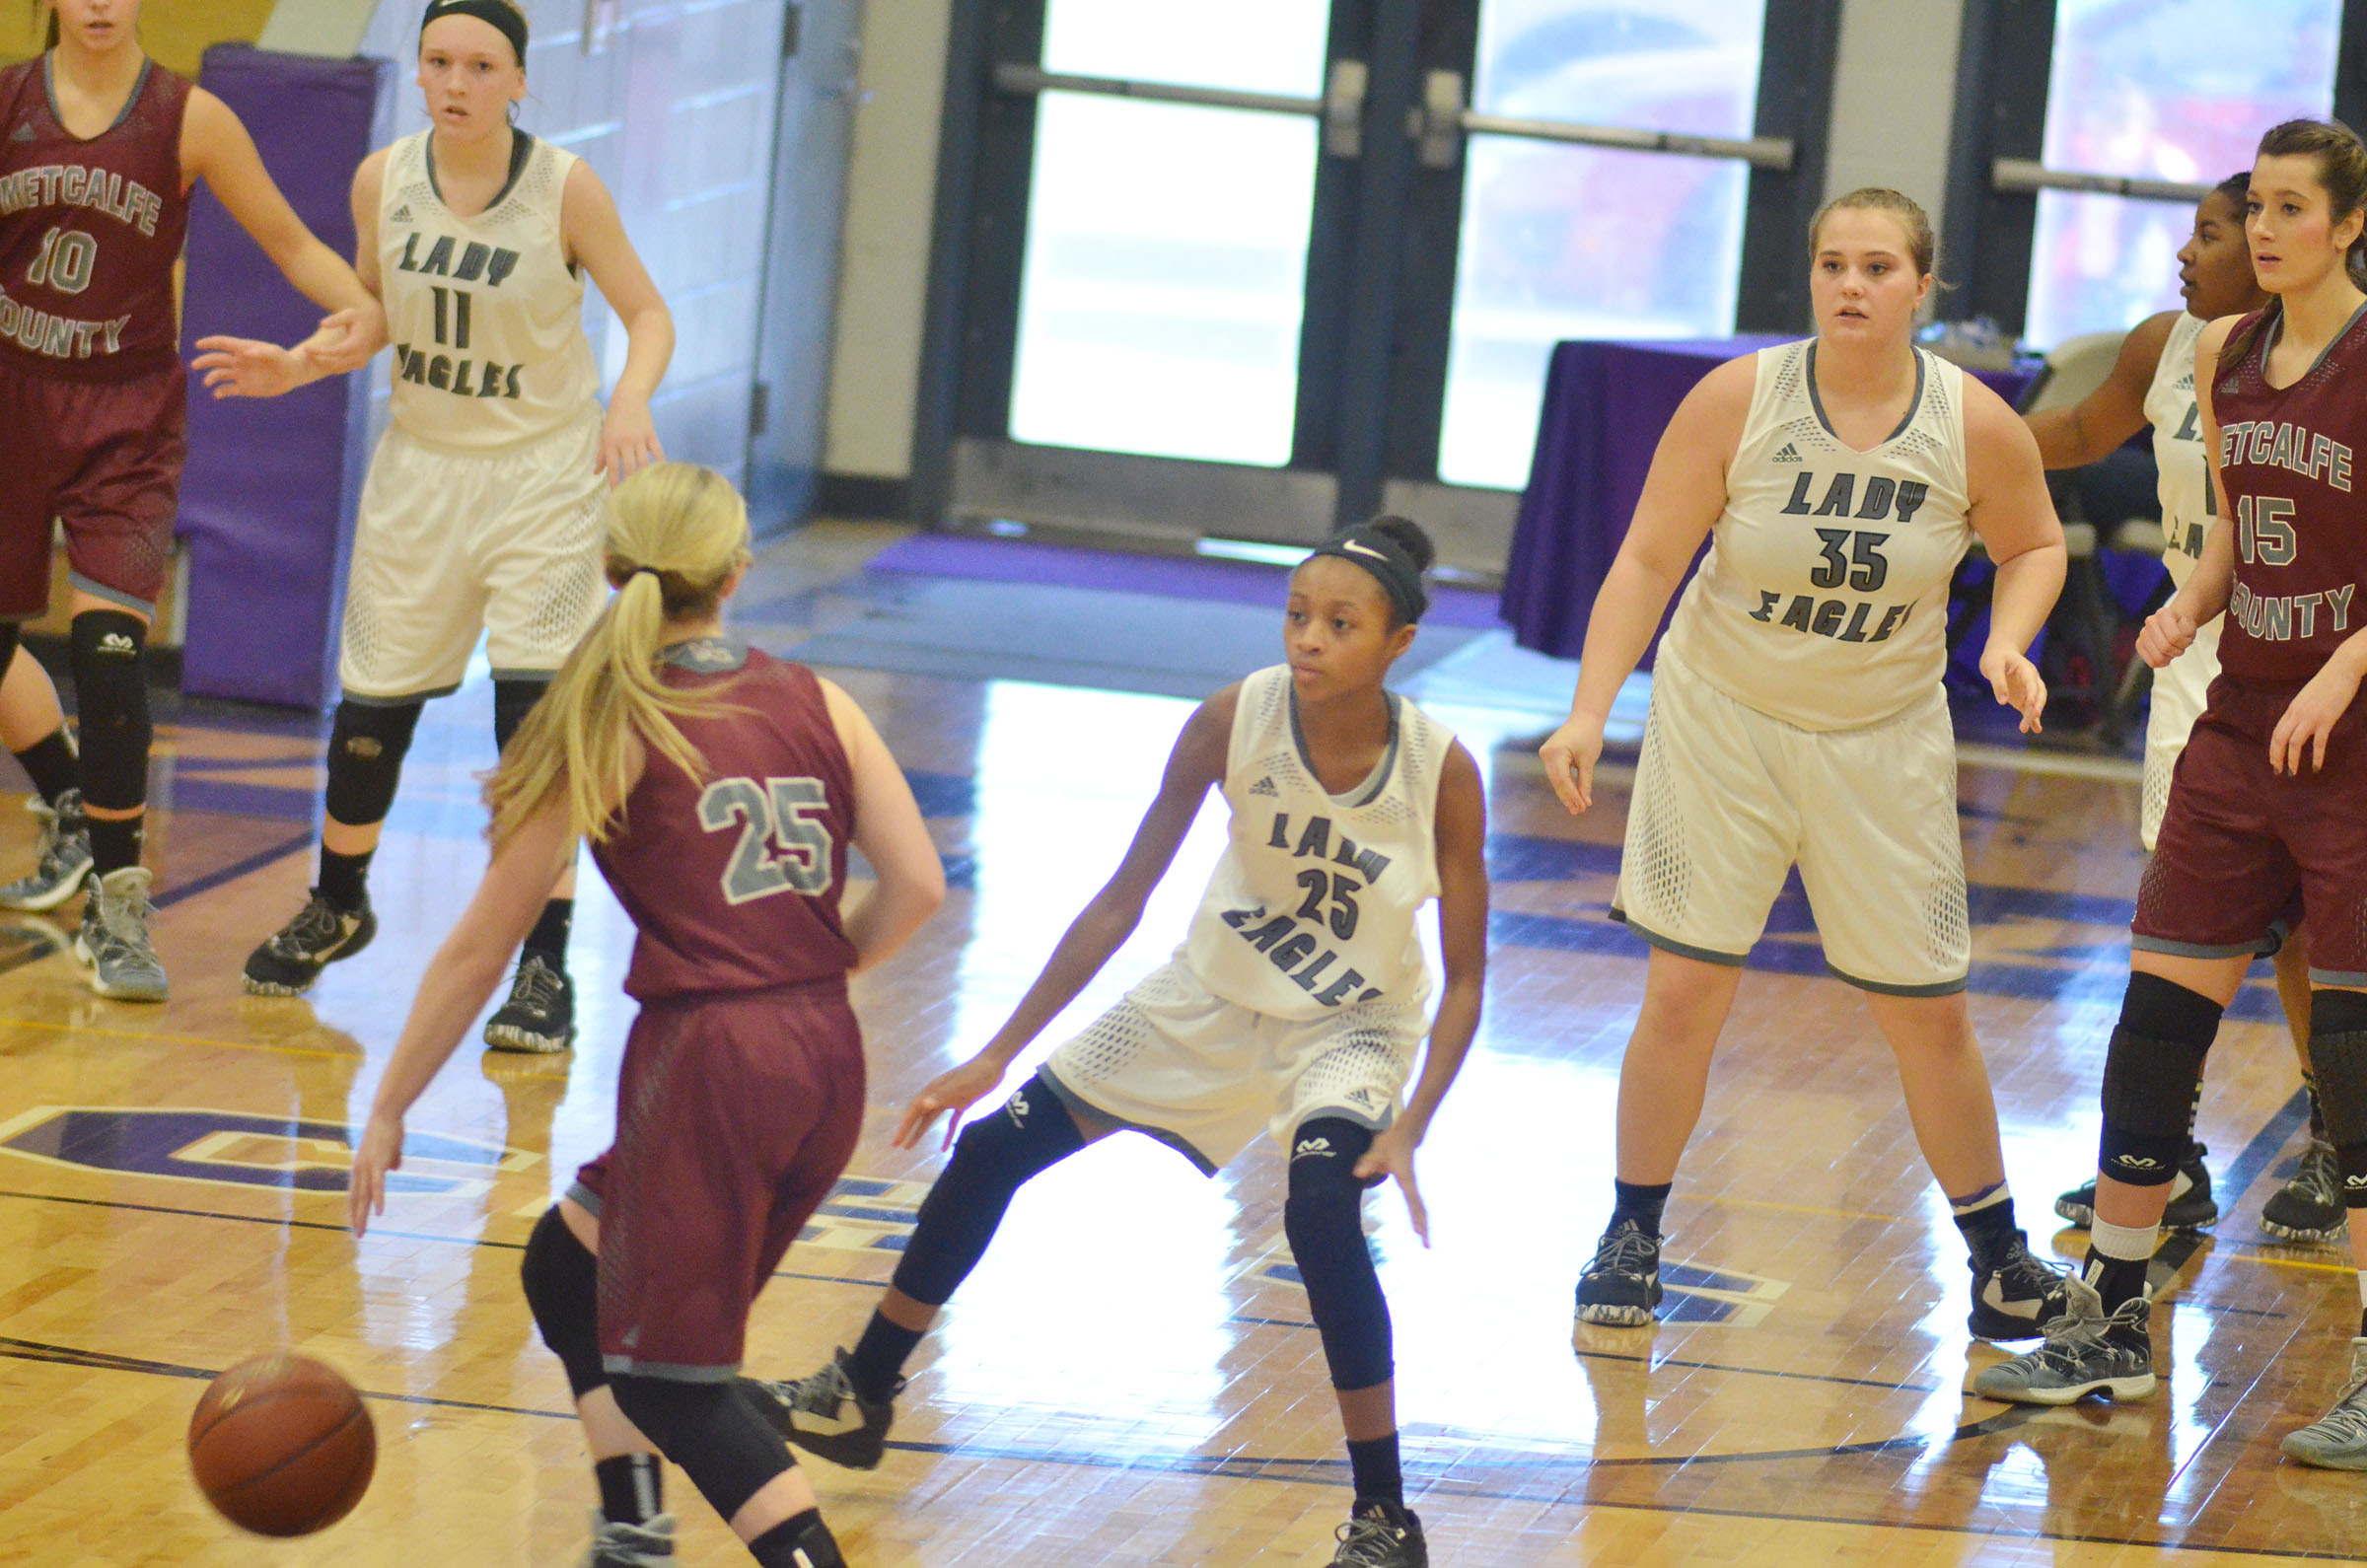 Campbellsville Middle School seventh-grader Bri Gowdy plays defense.